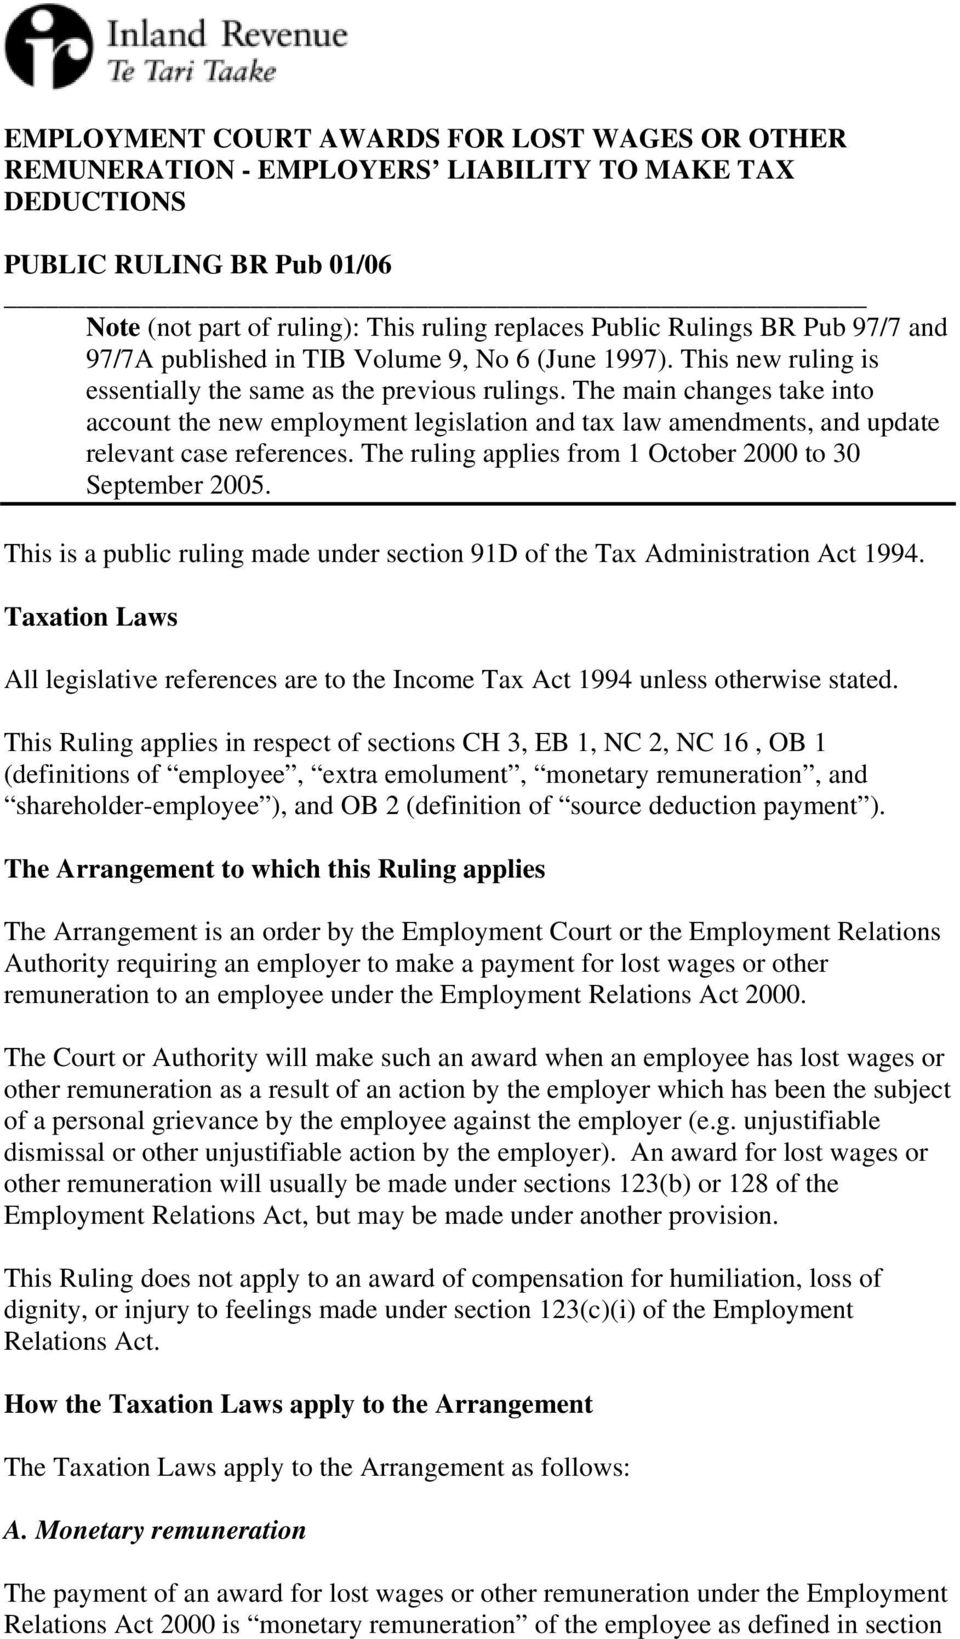 The main changes take into account the new employment legislation and tax law amendments, and update relevant case references. The ruling applies from 1 October 2000 to 30 September 2005.